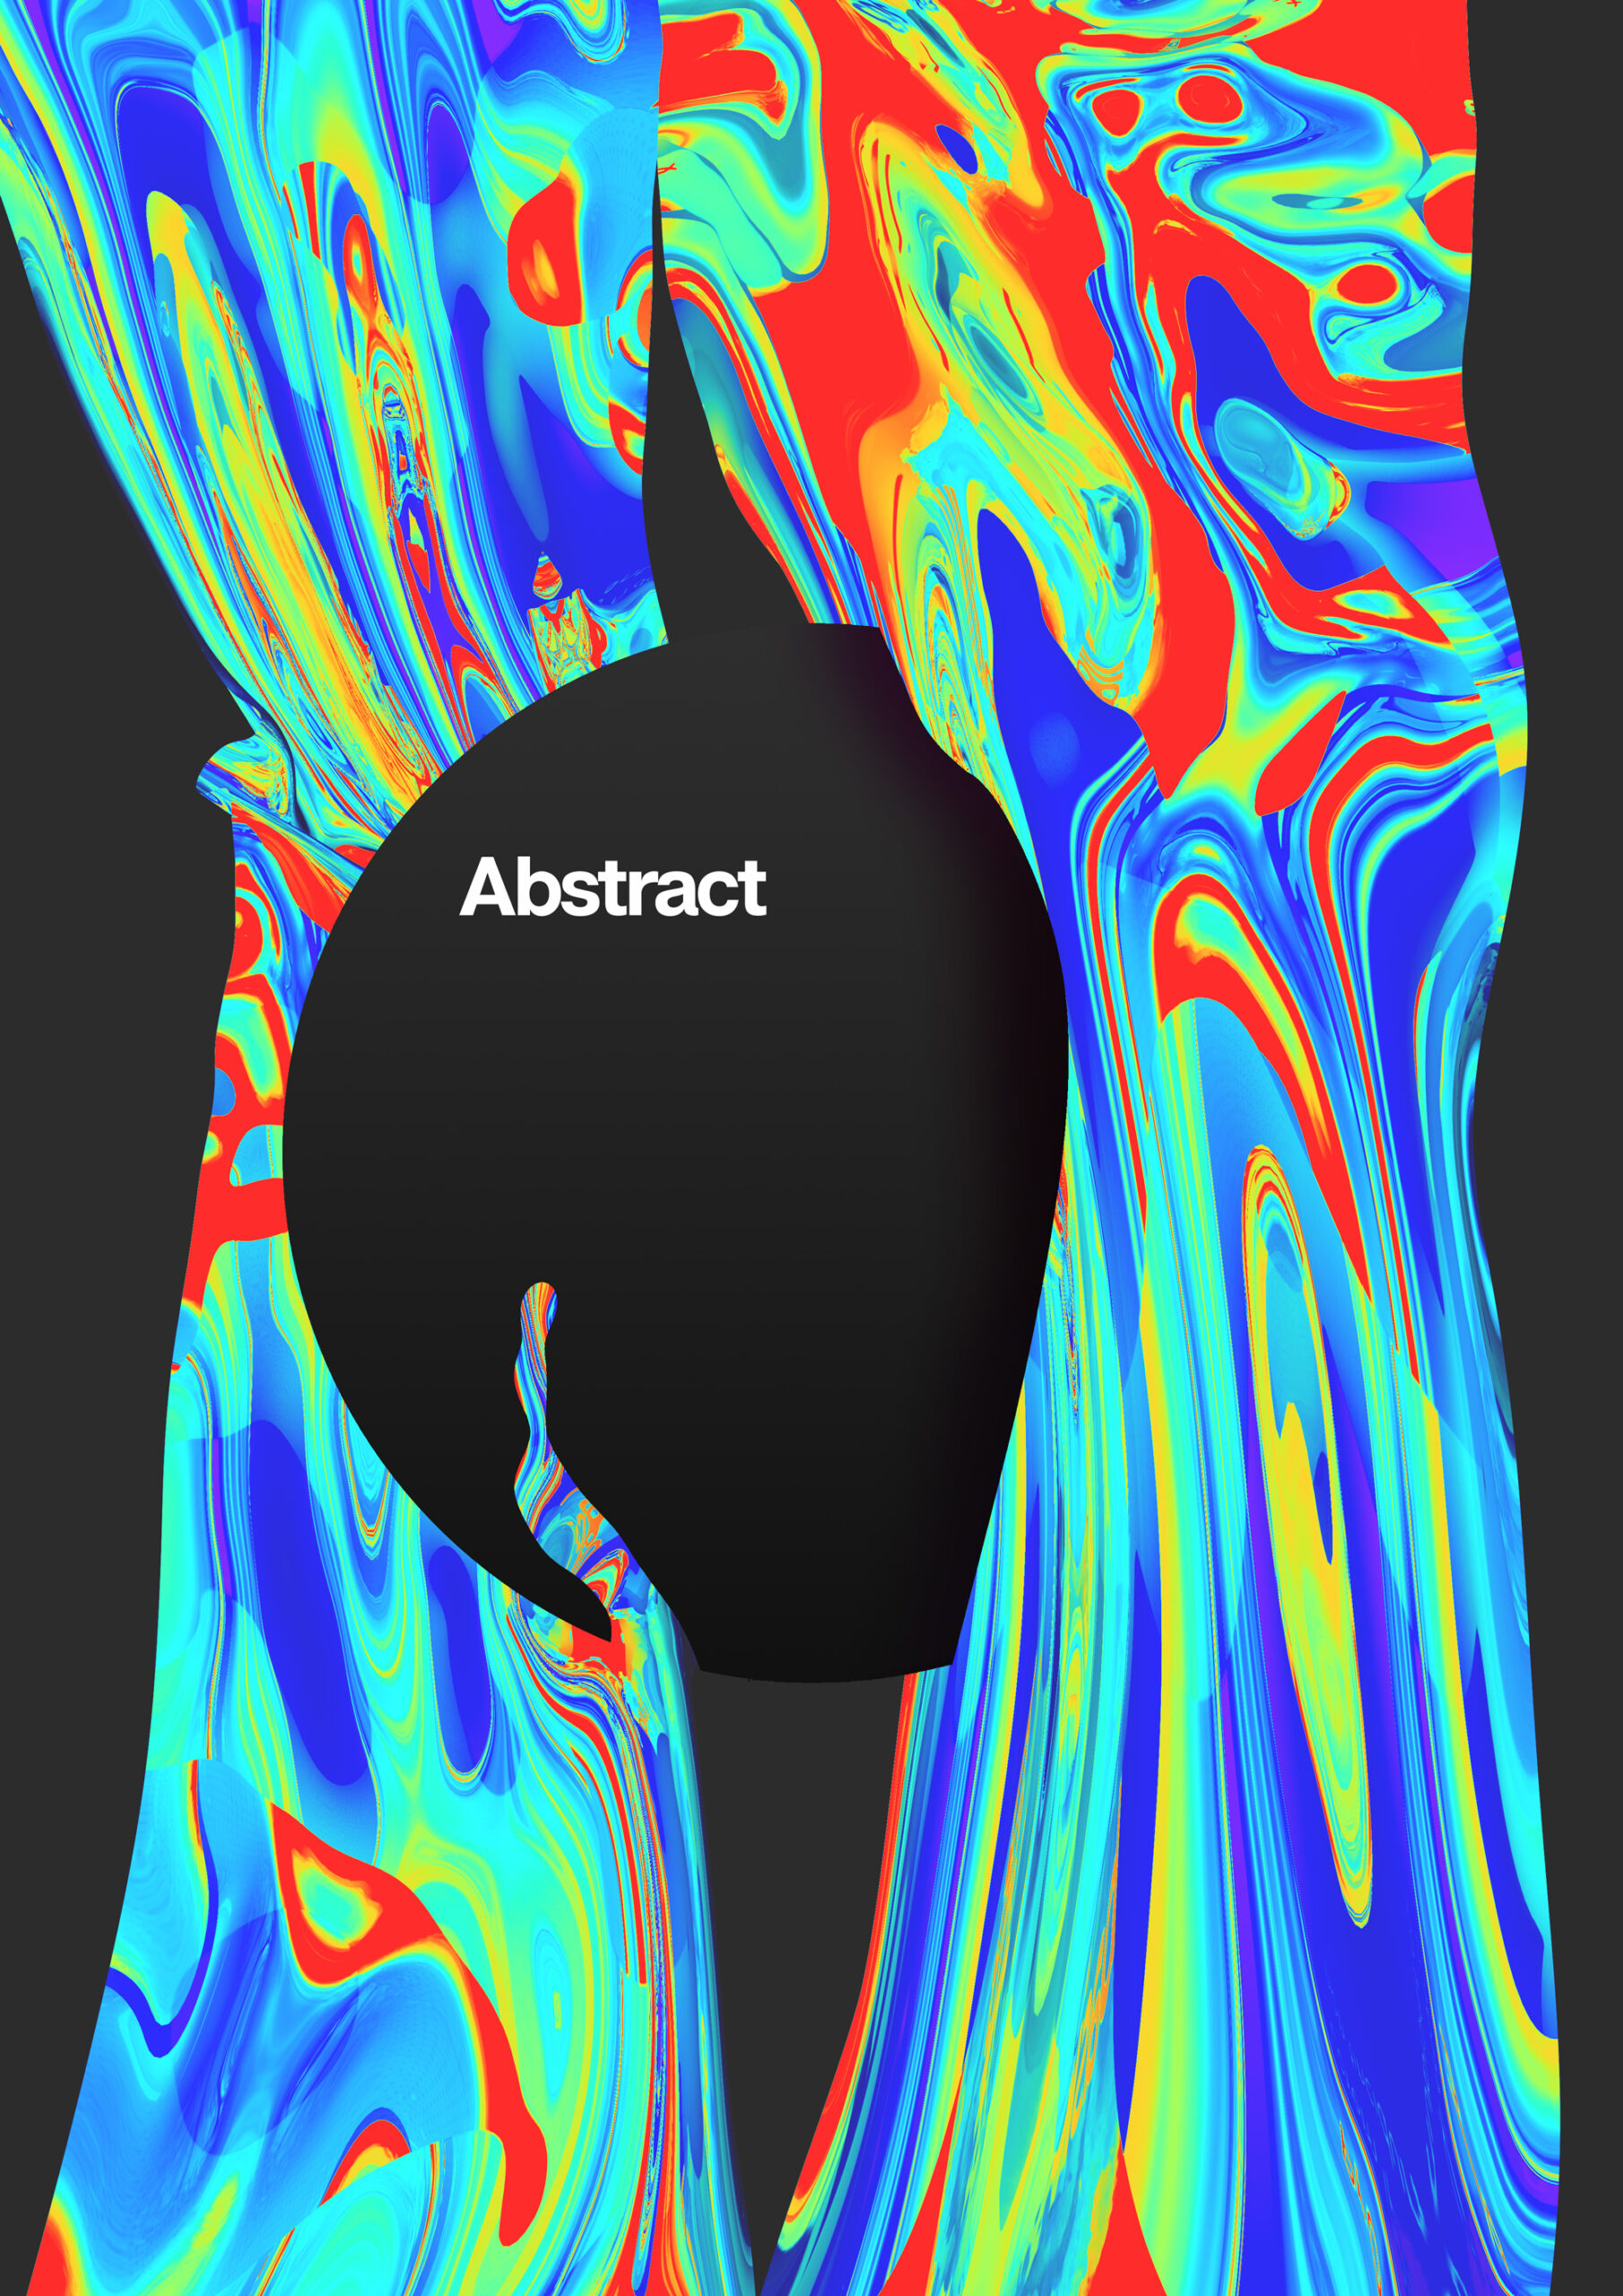 abstract_-poster3